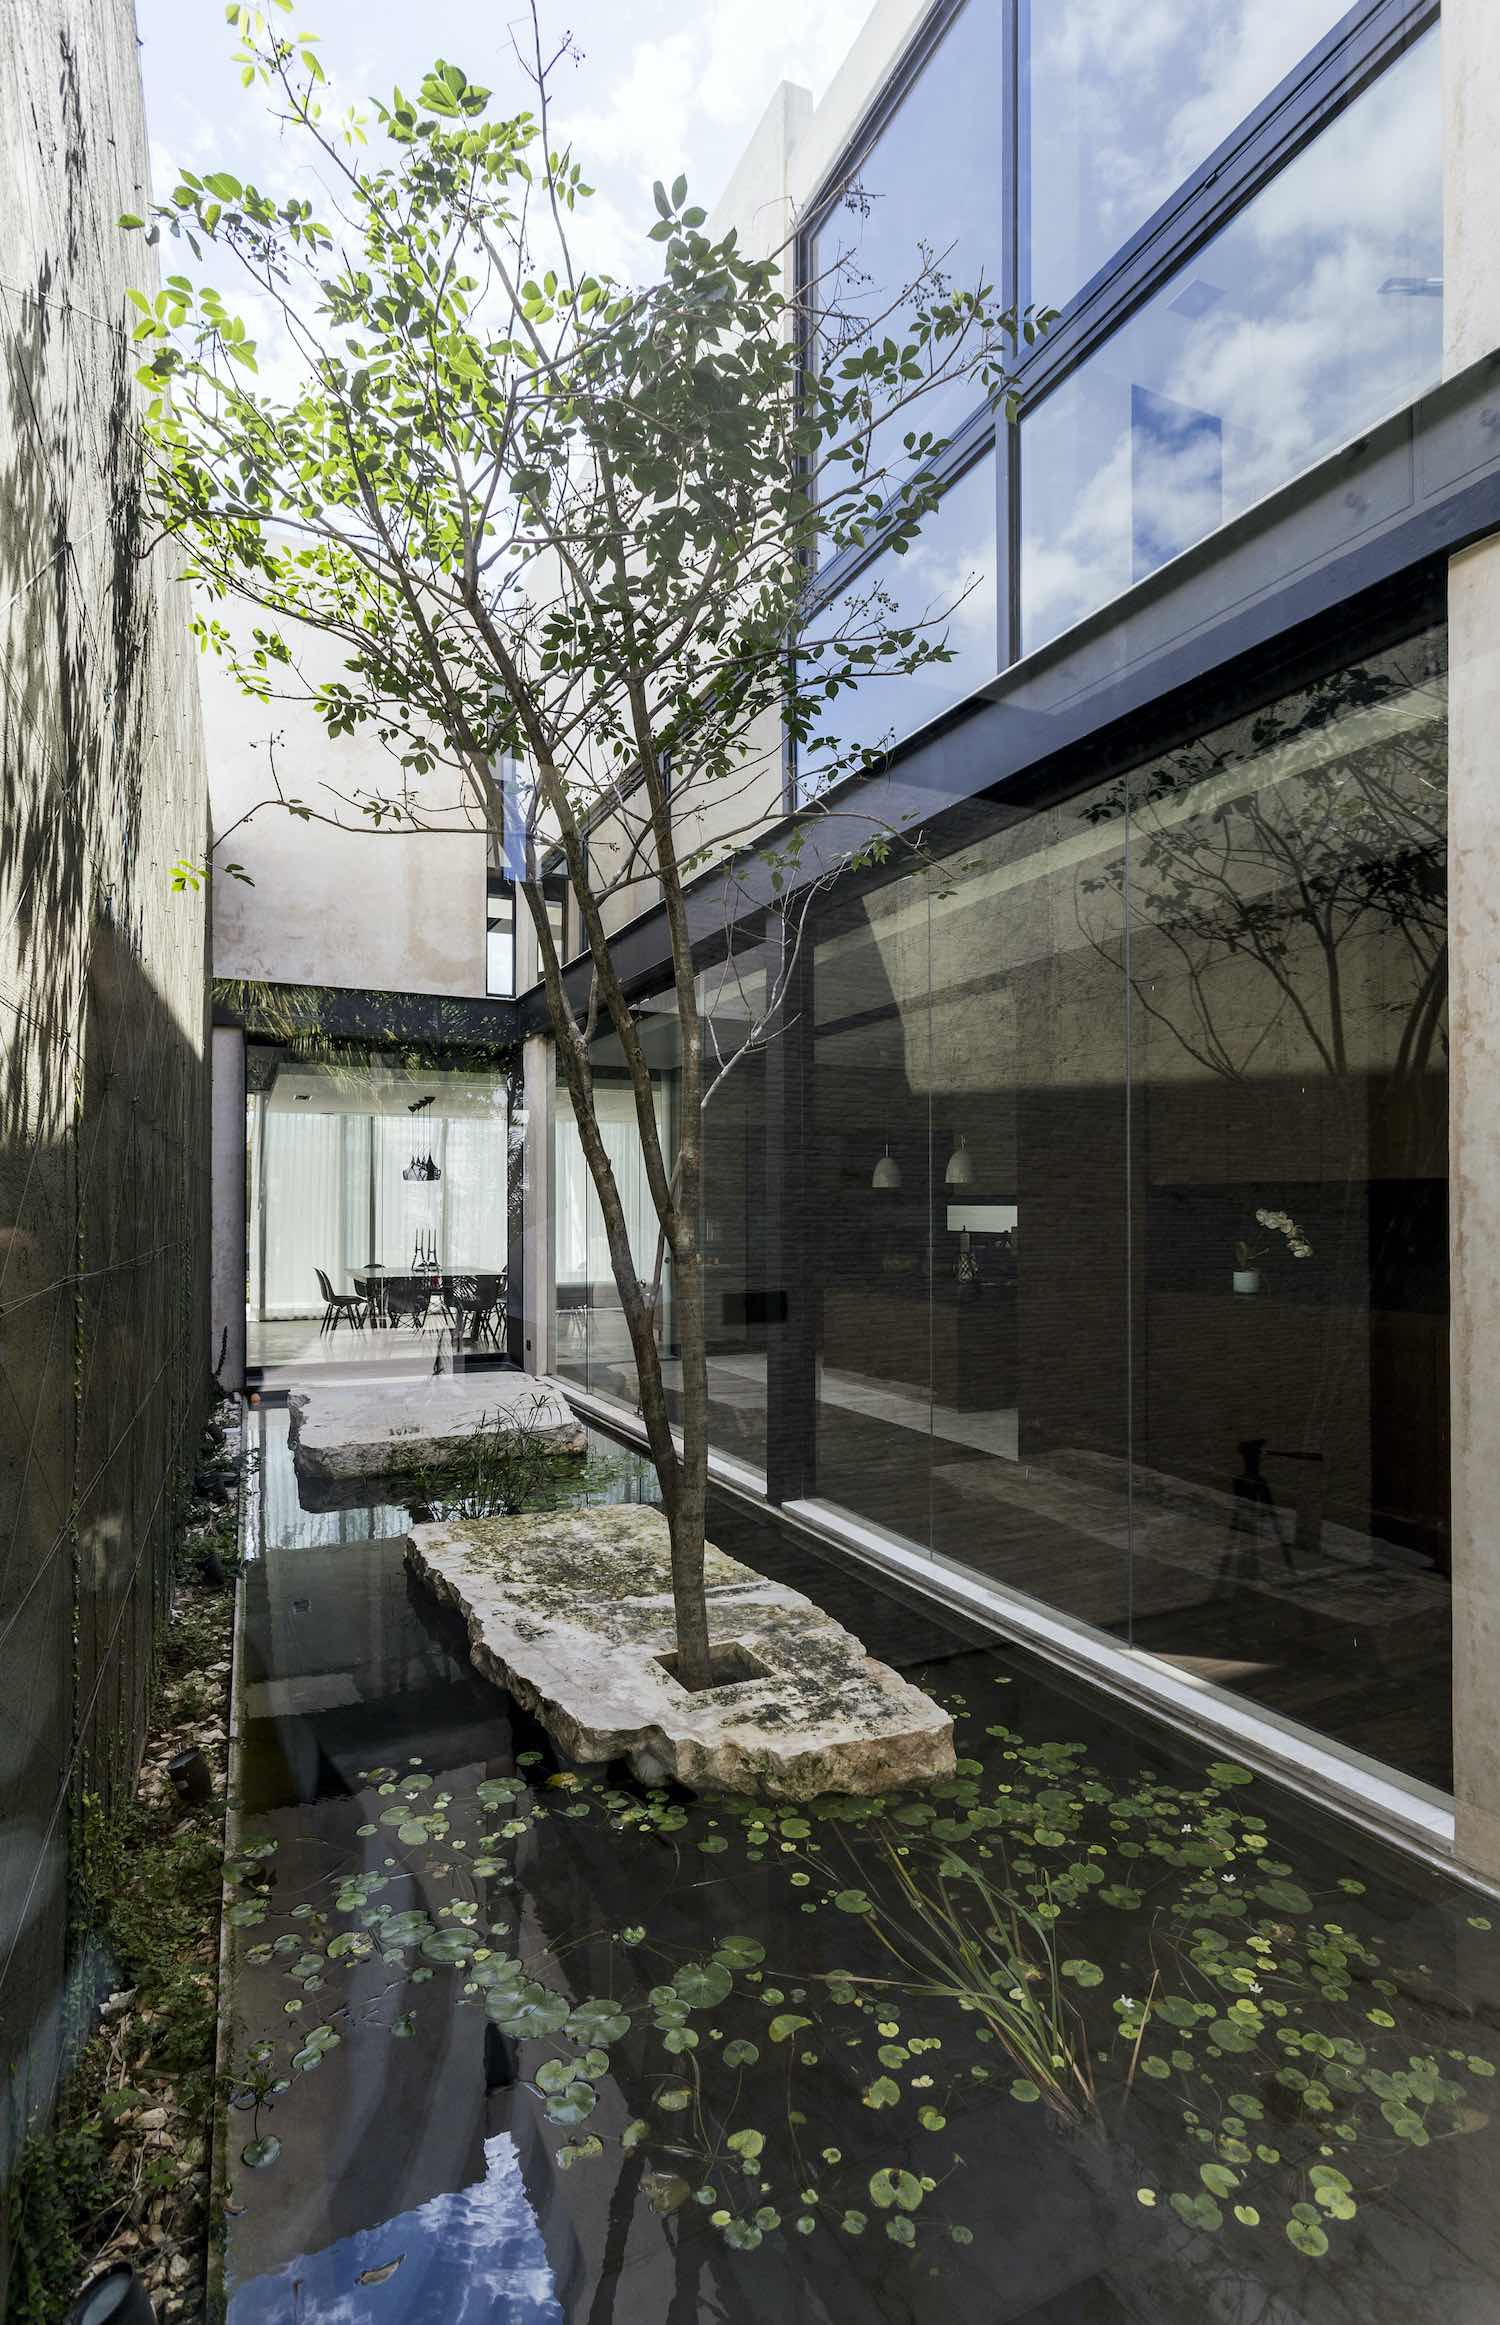 exterior of the house made of glass and stucco